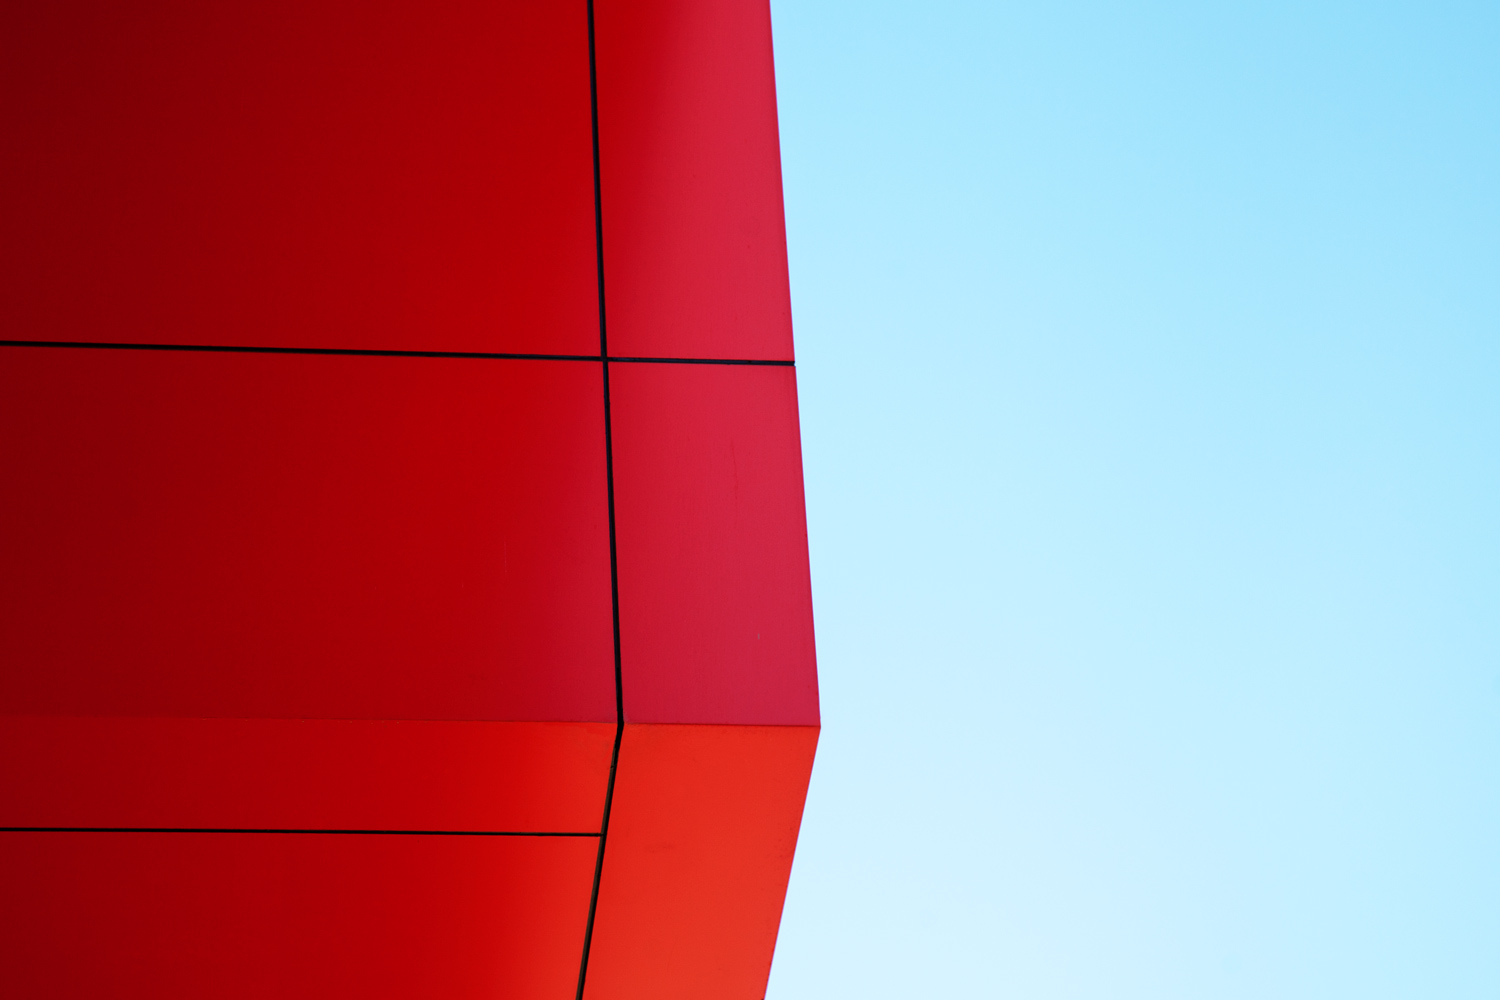 https://i1.wp.com/digital-photography-school.com/wp-content/uploads/2019/02/Line_photography_building_architecture_red.jpg?resize=1500%2C1000&ssl=1